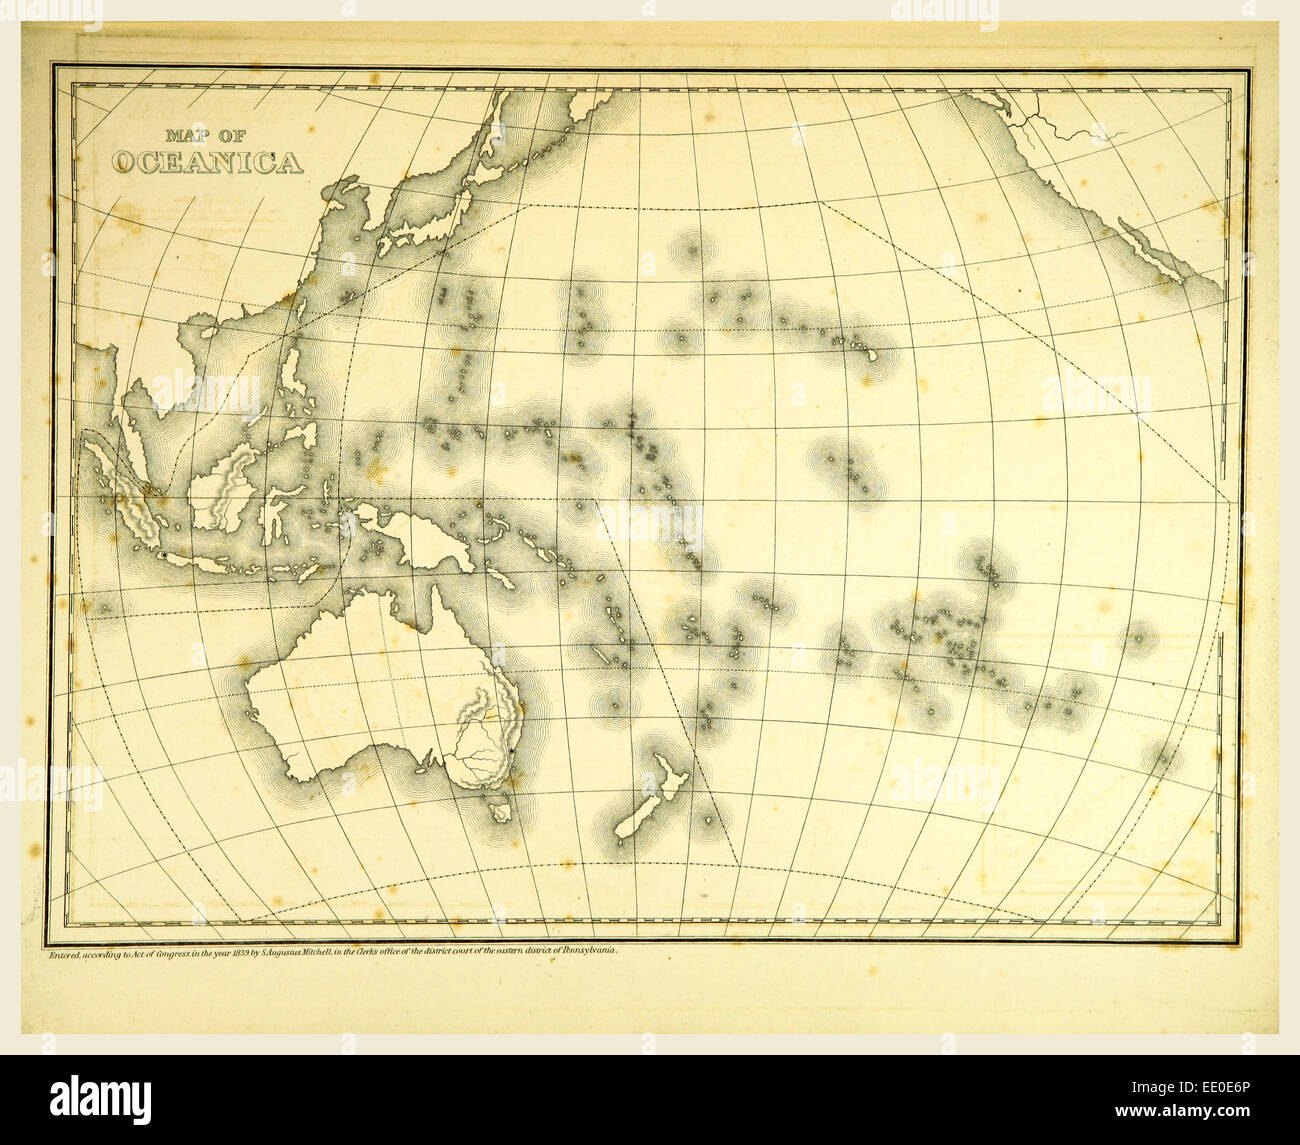 Mitchell's Atlas of outline maps, map of Oceanica, 19th century engraving, Oceania - Stock Image